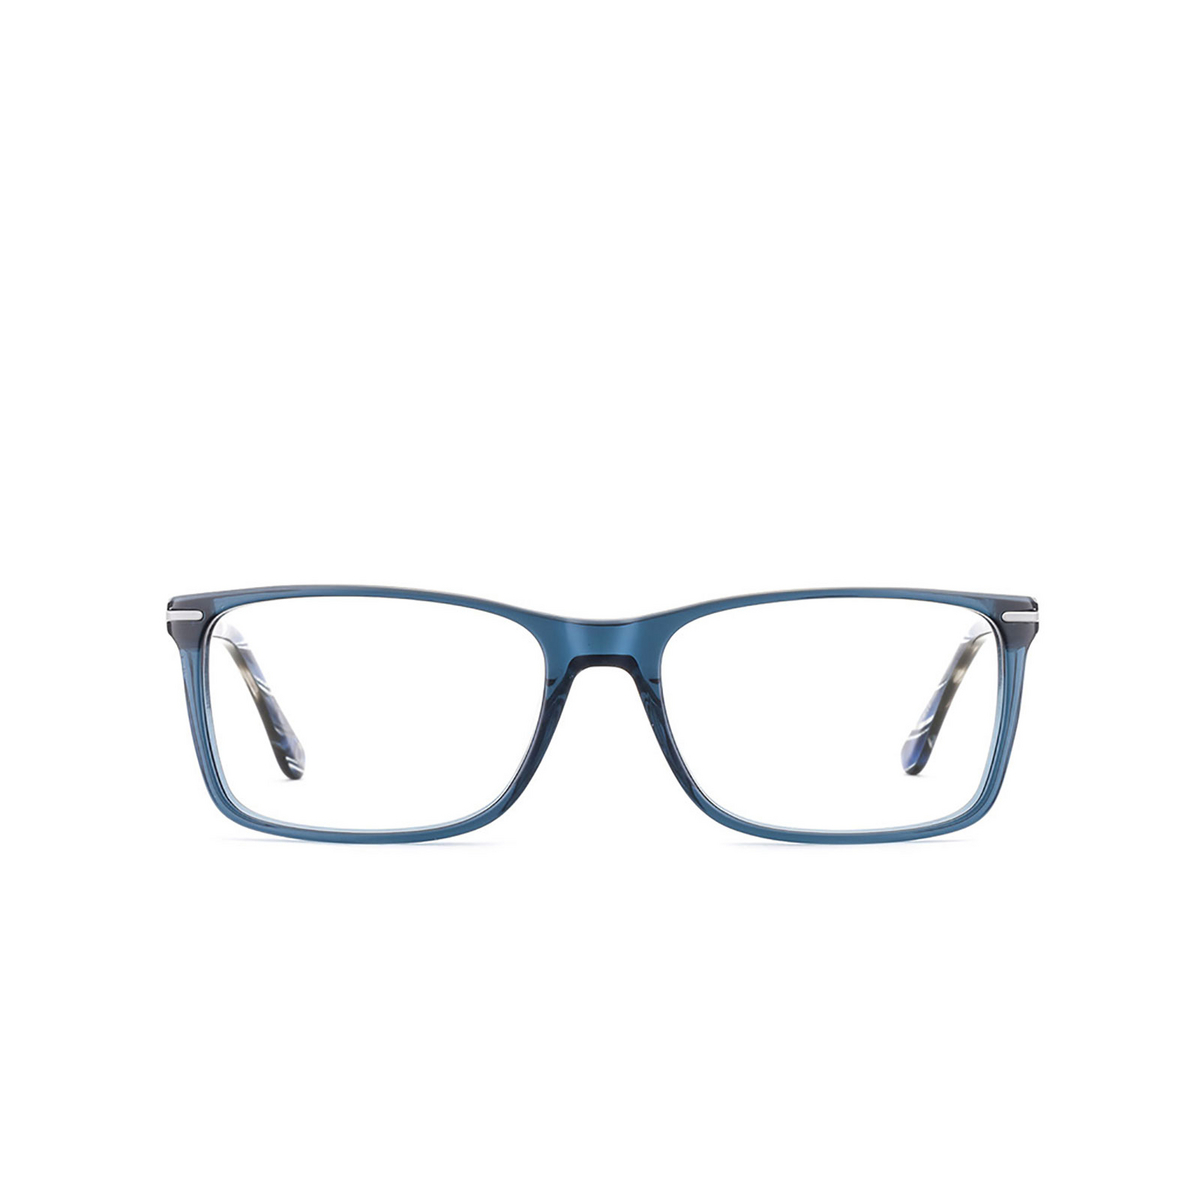 Etnia Barcelona® Rectangle Eyeglasses: Missisipi color Blgy - front view.